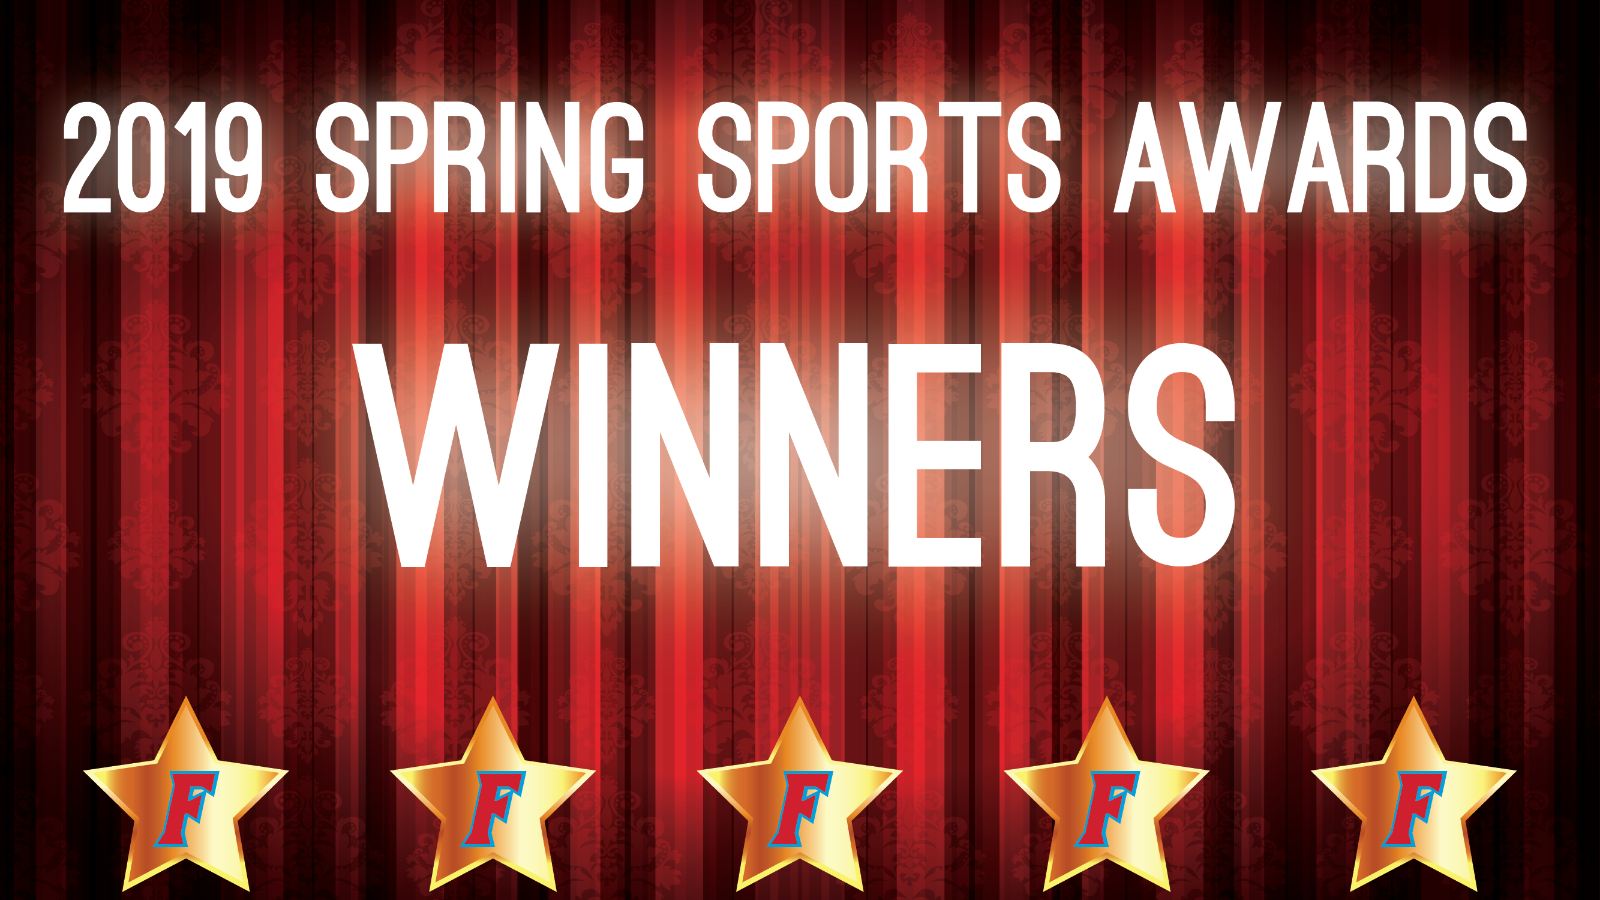 2019 Spring Sports Awards Winners and Slideshow